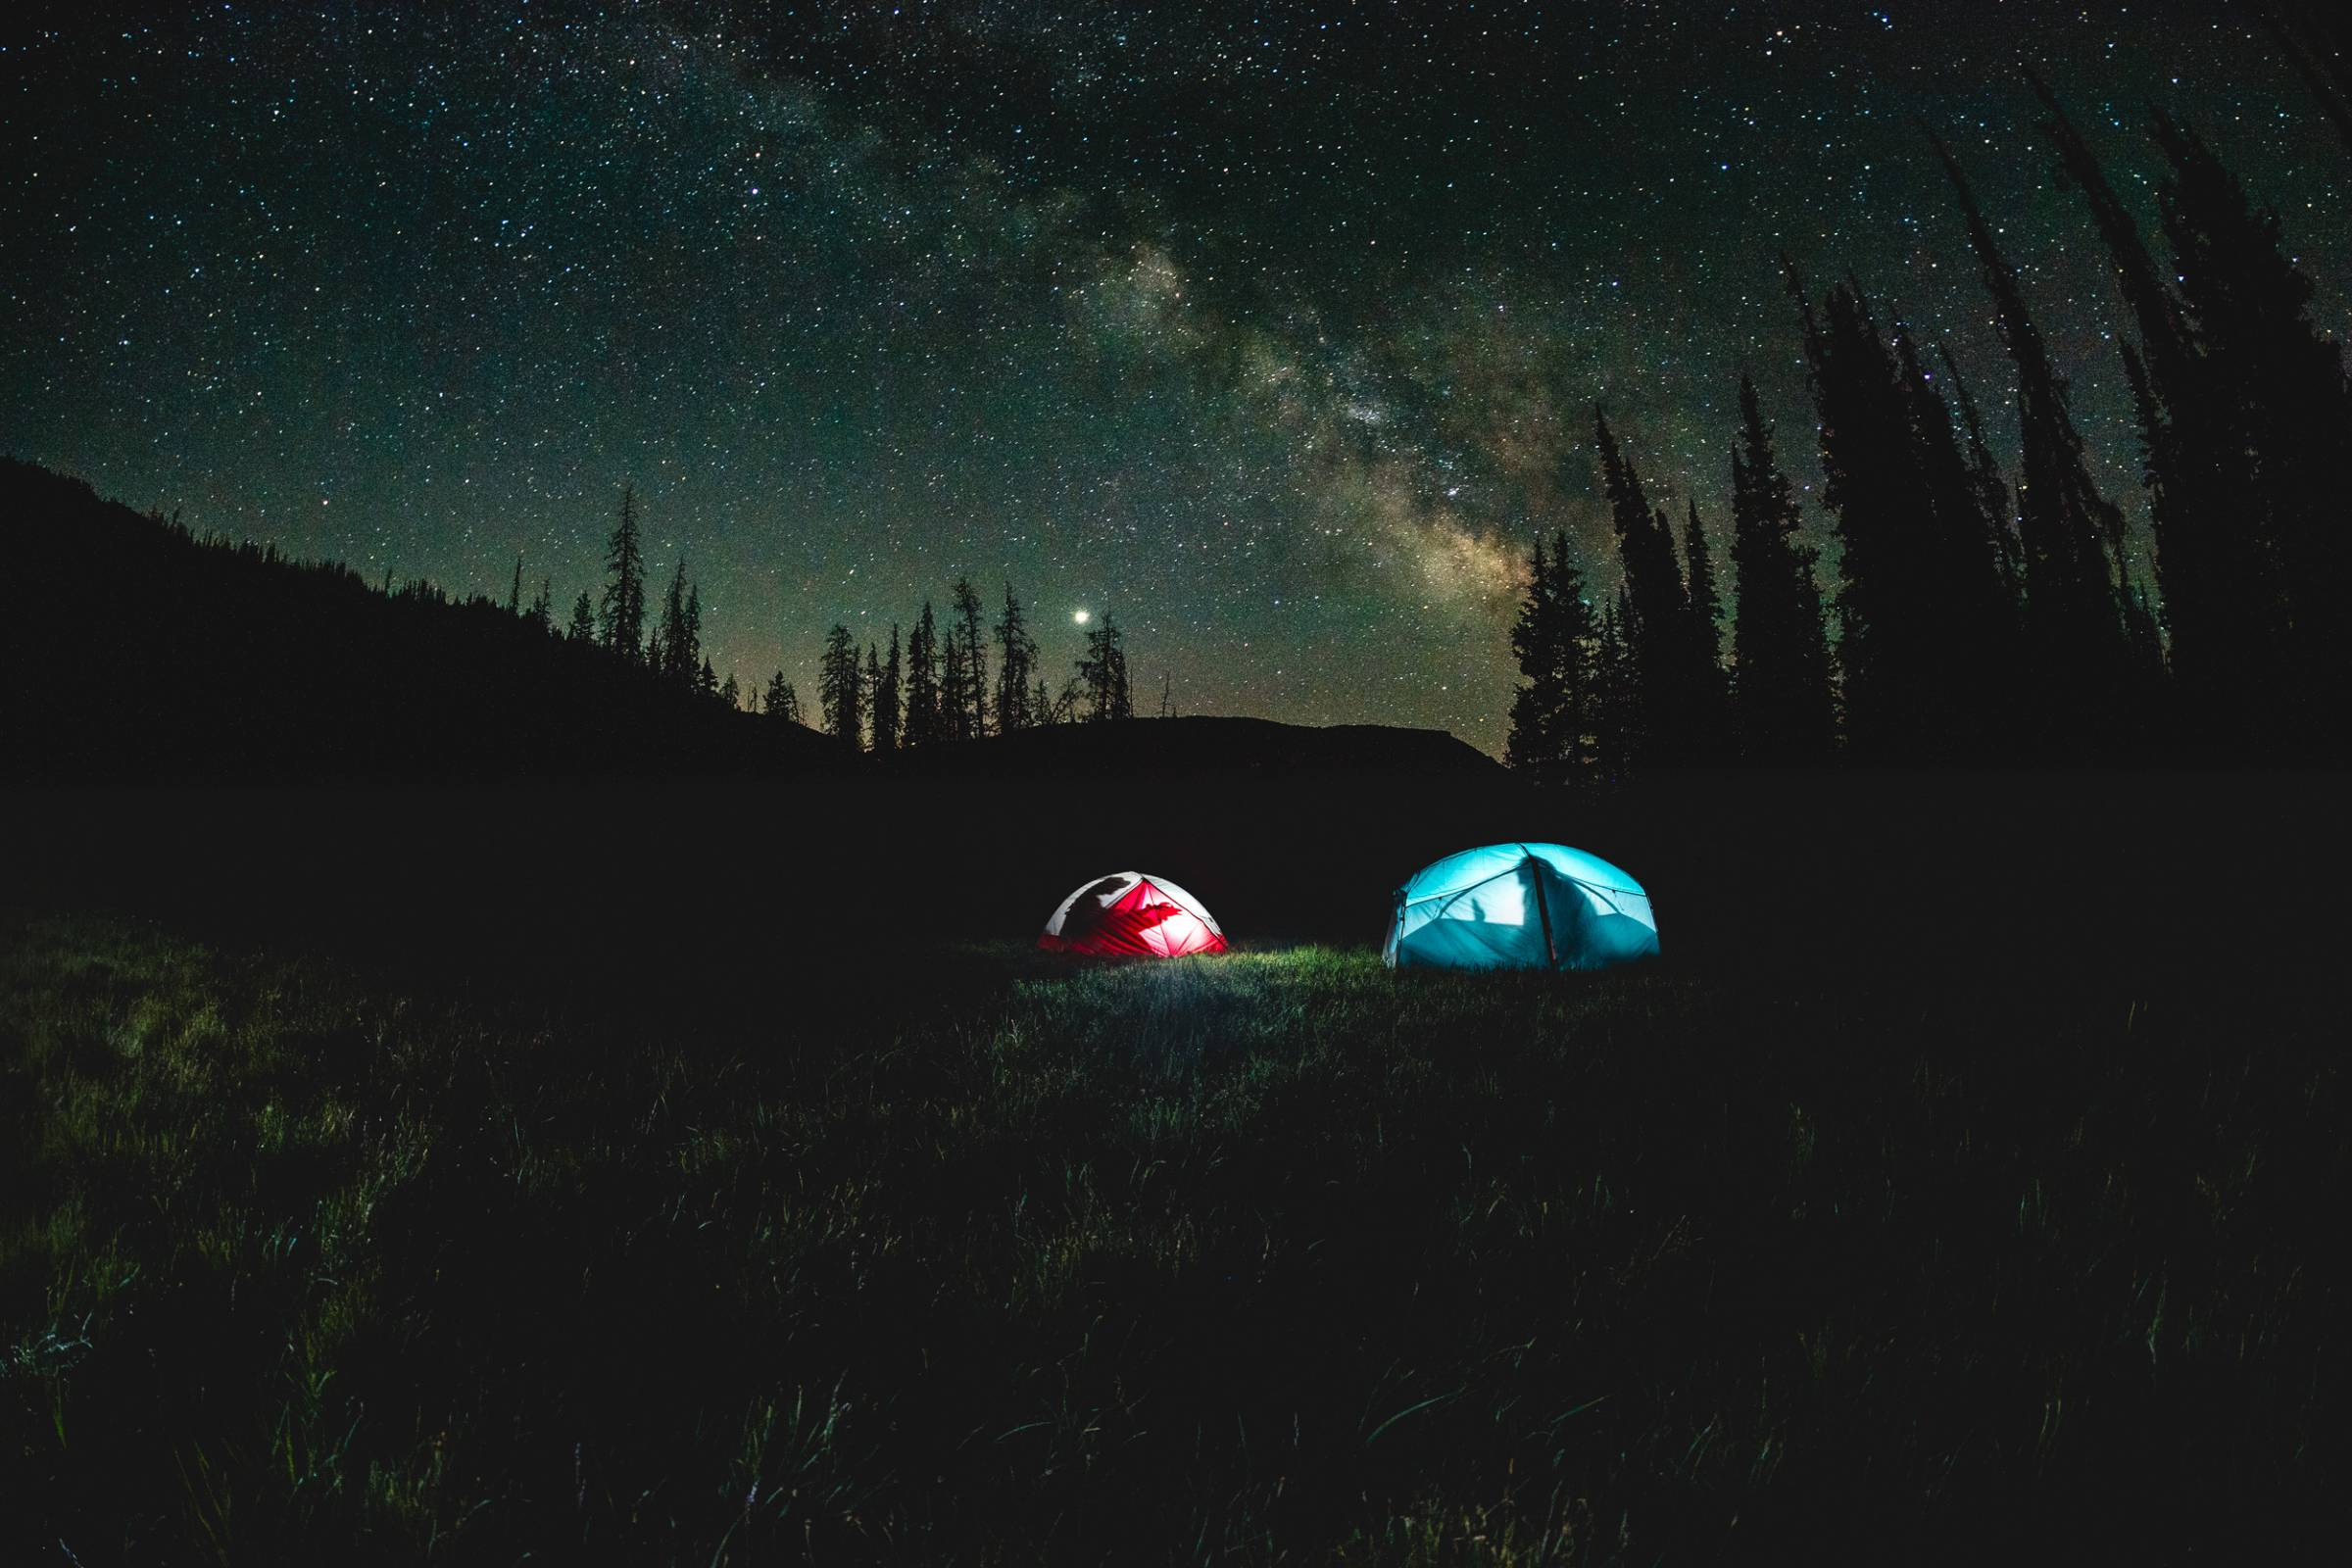 backcountry-night-camping-lifestyle